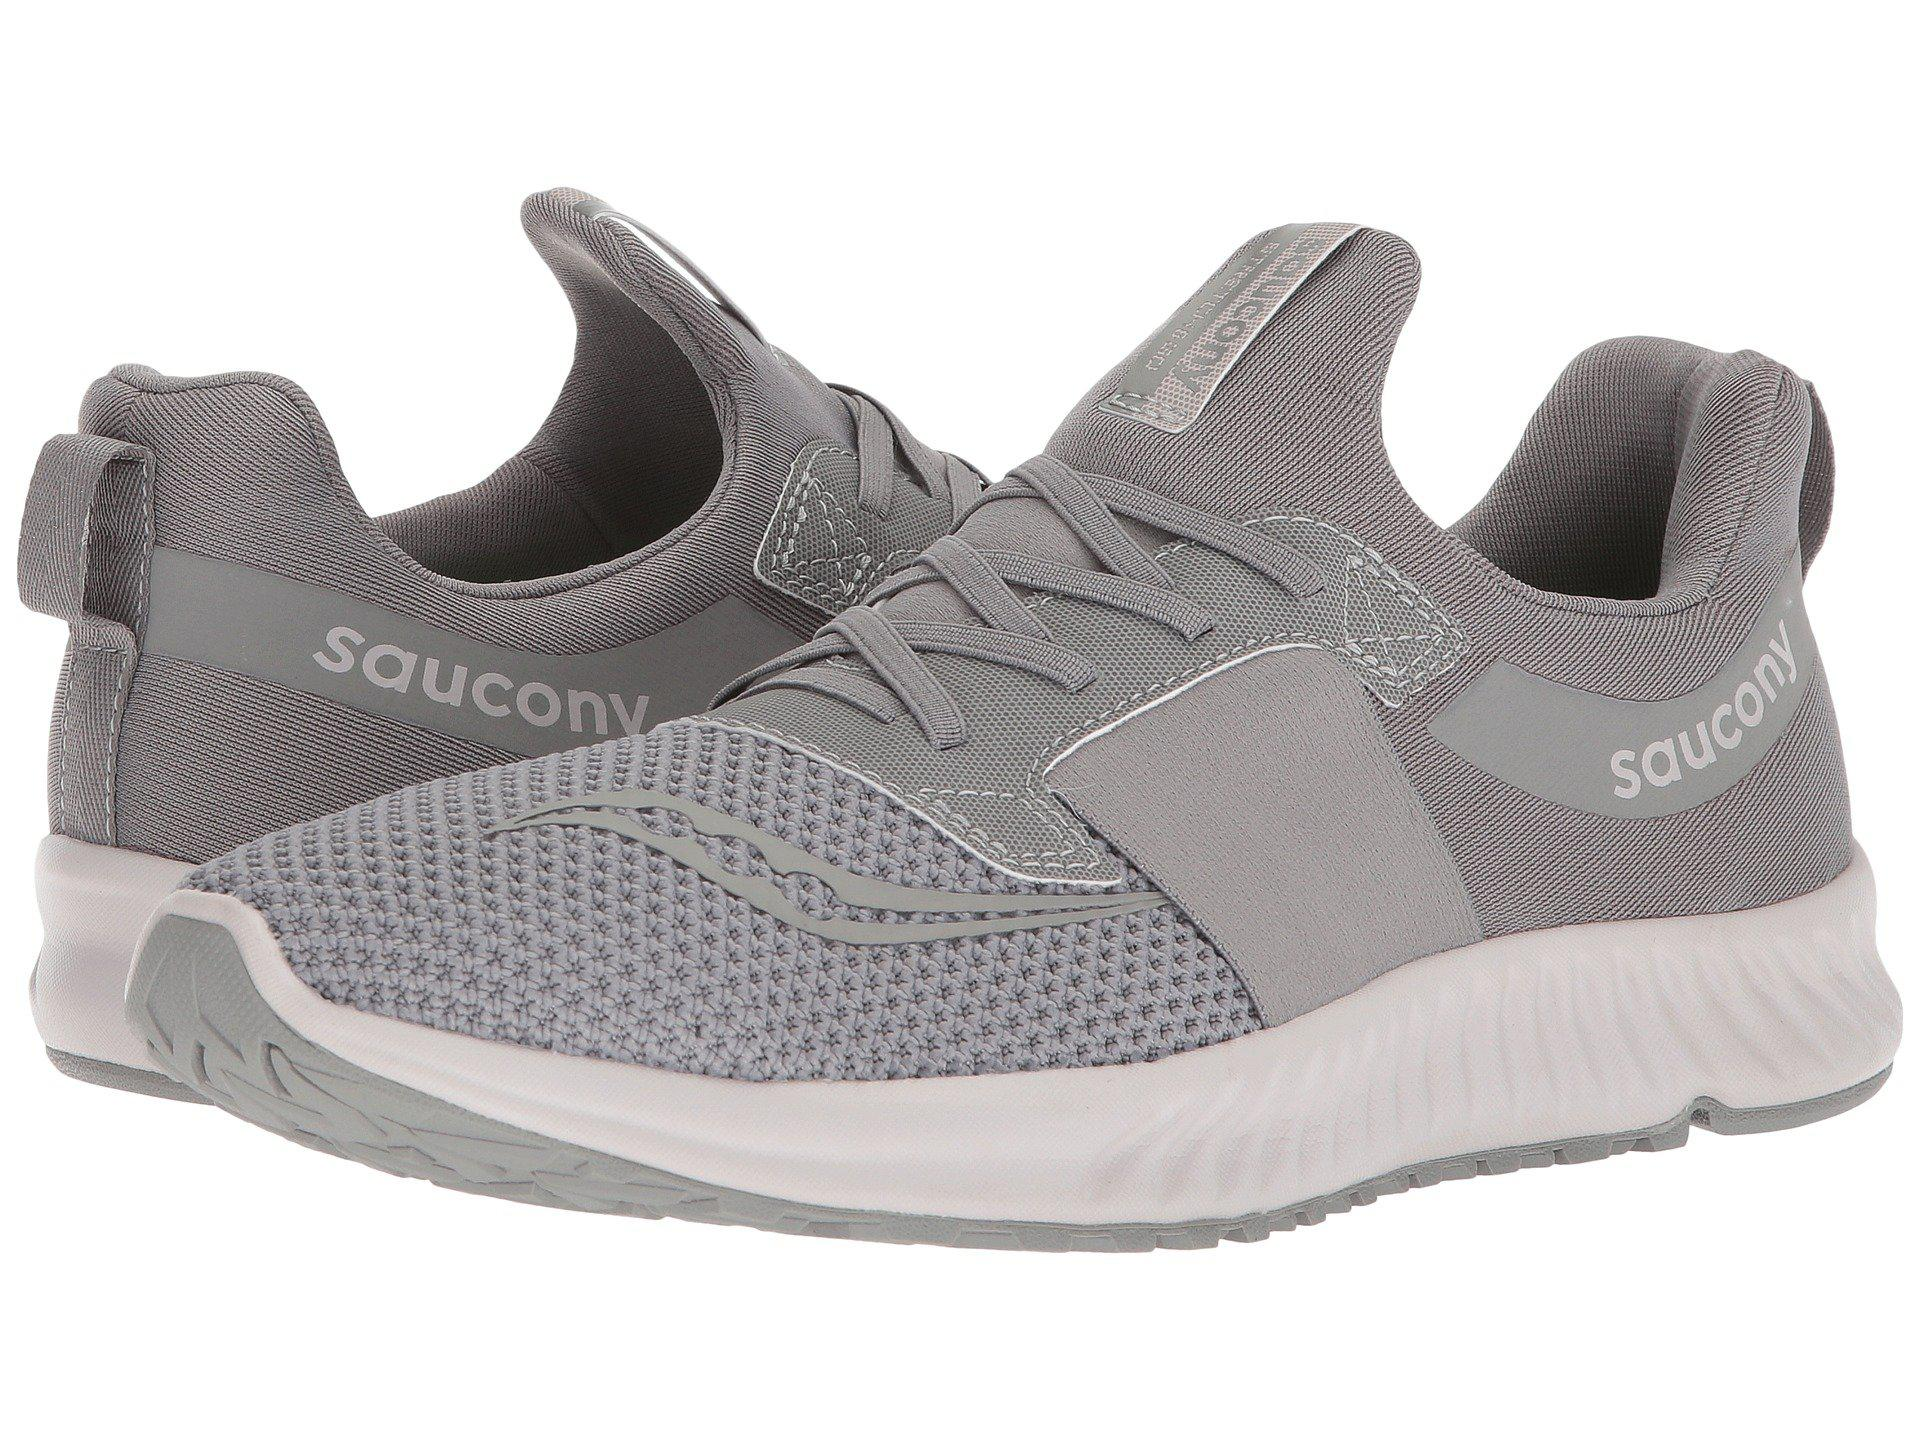 1f260a54aeb Saucony - Gray Stretch Go Breeze (navy) Men s Running Shoes for Men - Lyst.  View fullscreen